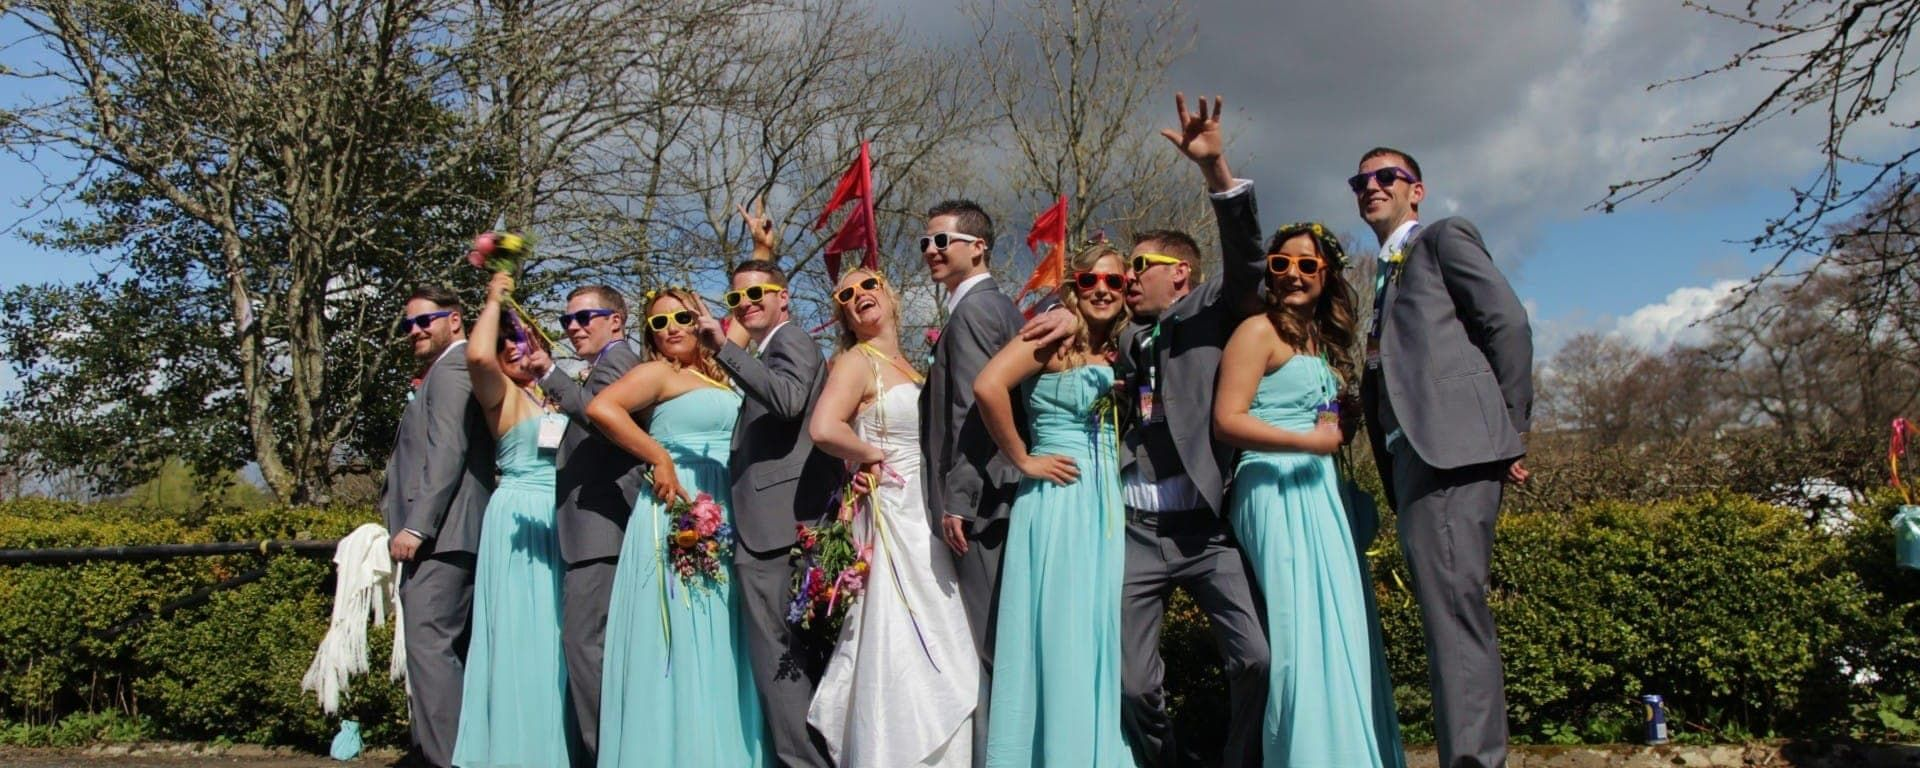 Music Festival Theme for Lake District Wedding